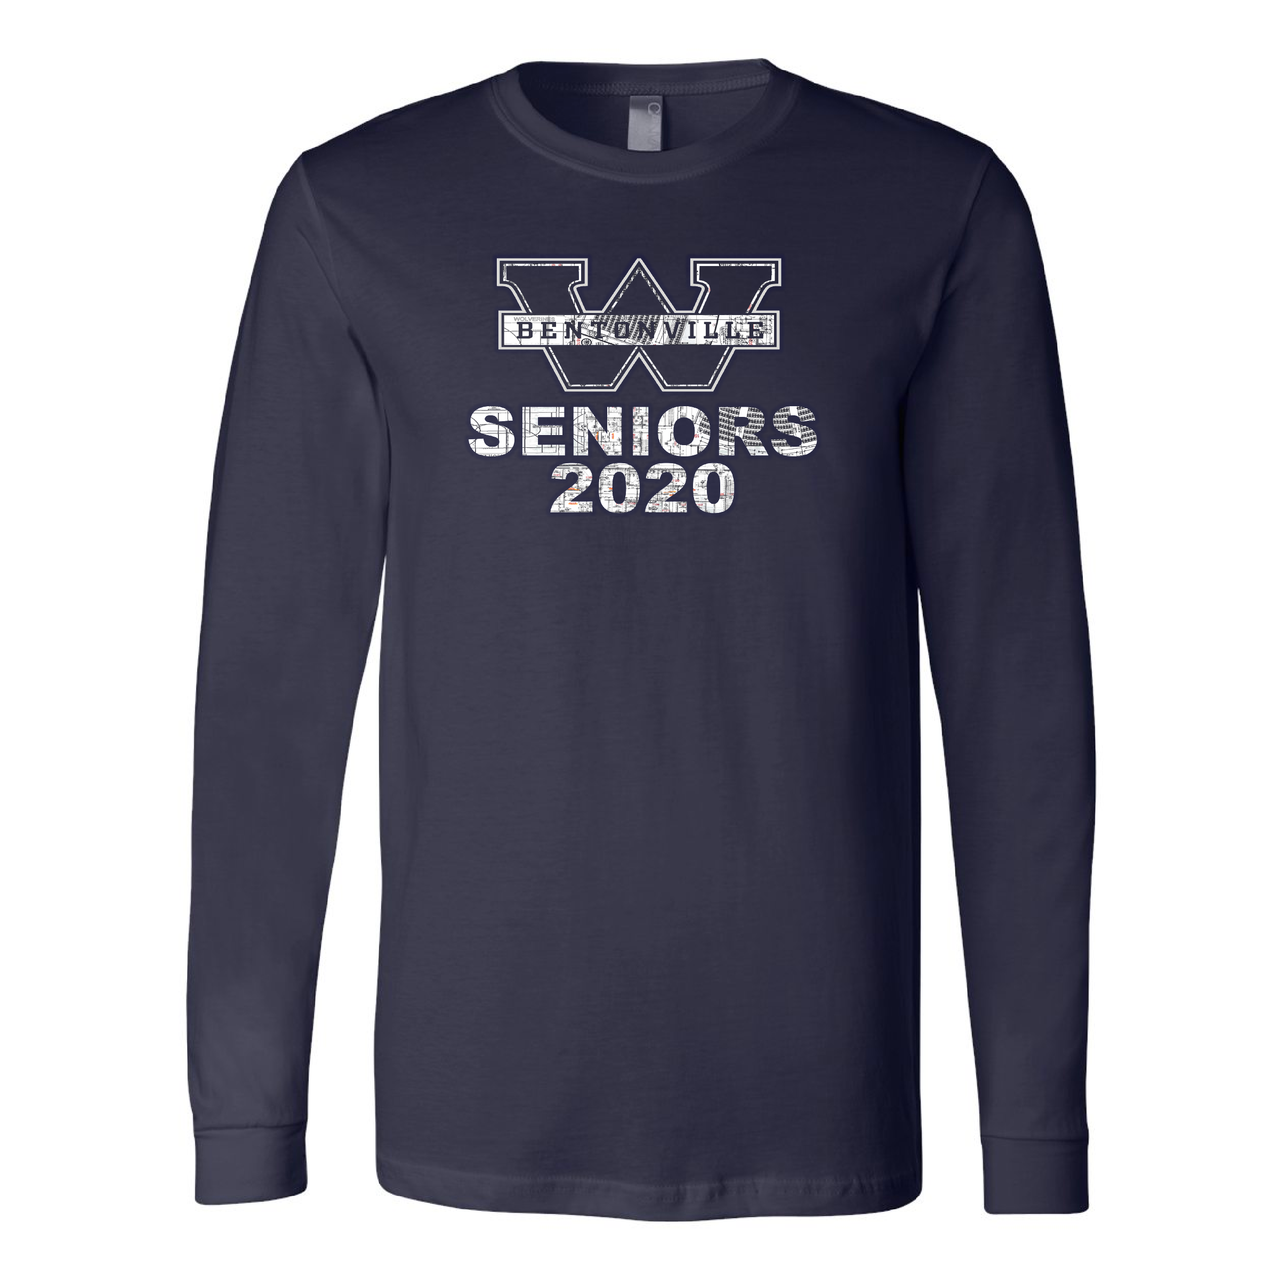 Bentonville West Senior Class Long Sleeve Tee